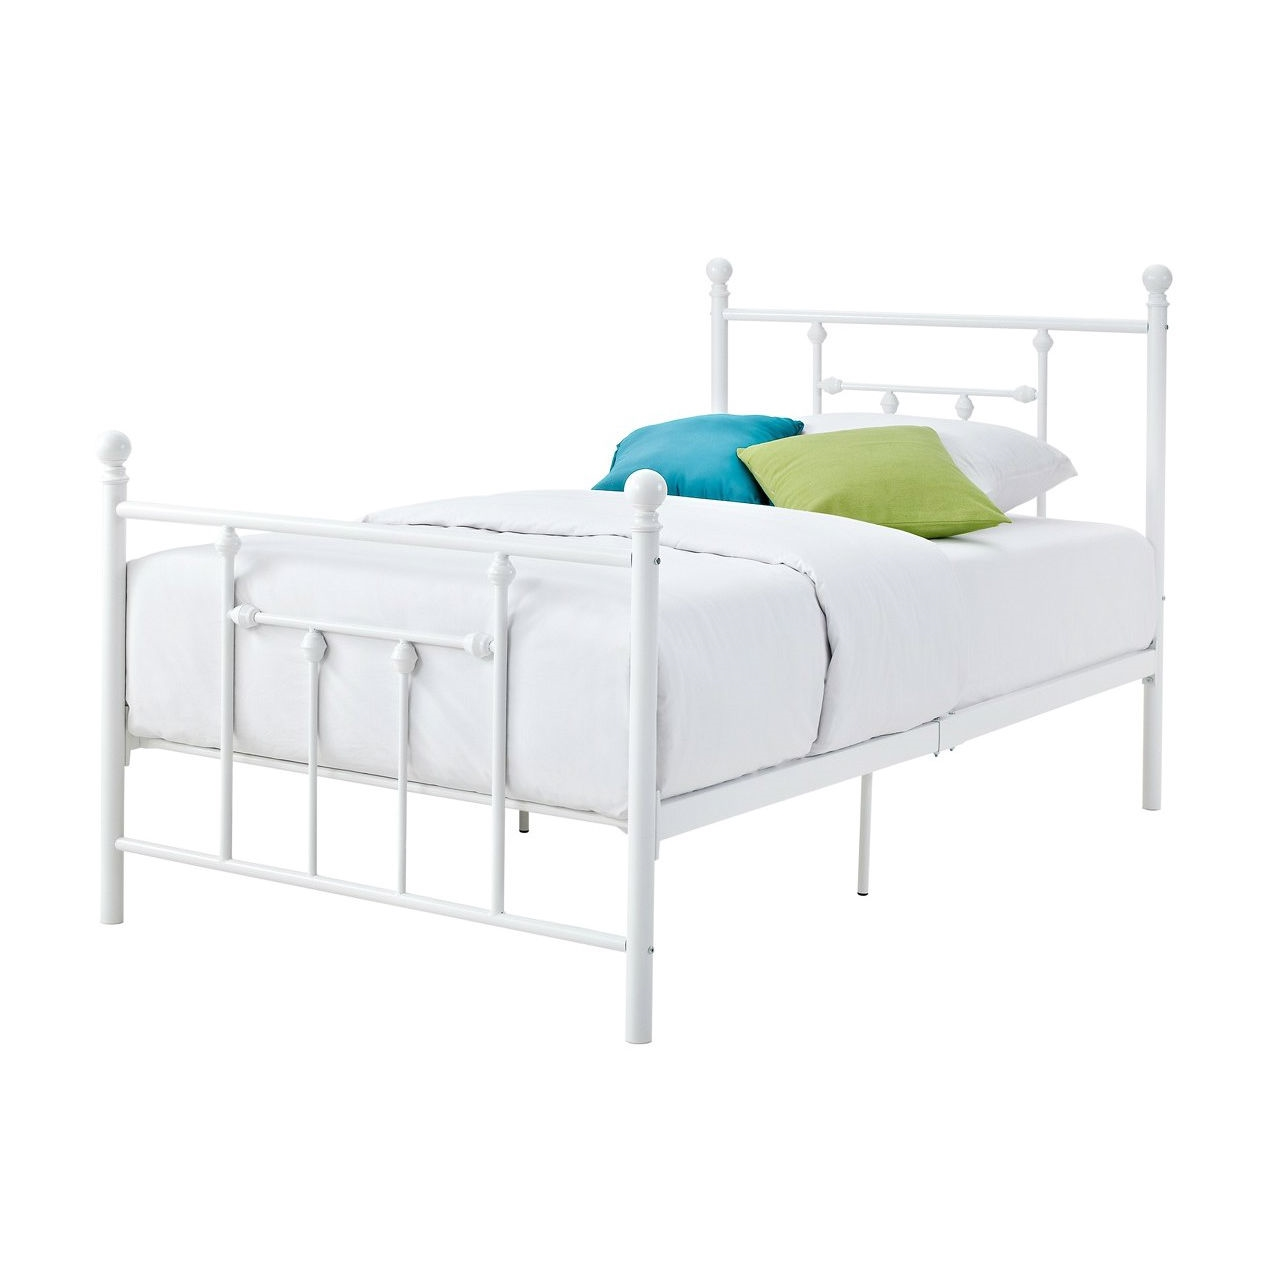 twin metal bed frame headboard footboard kjpwg